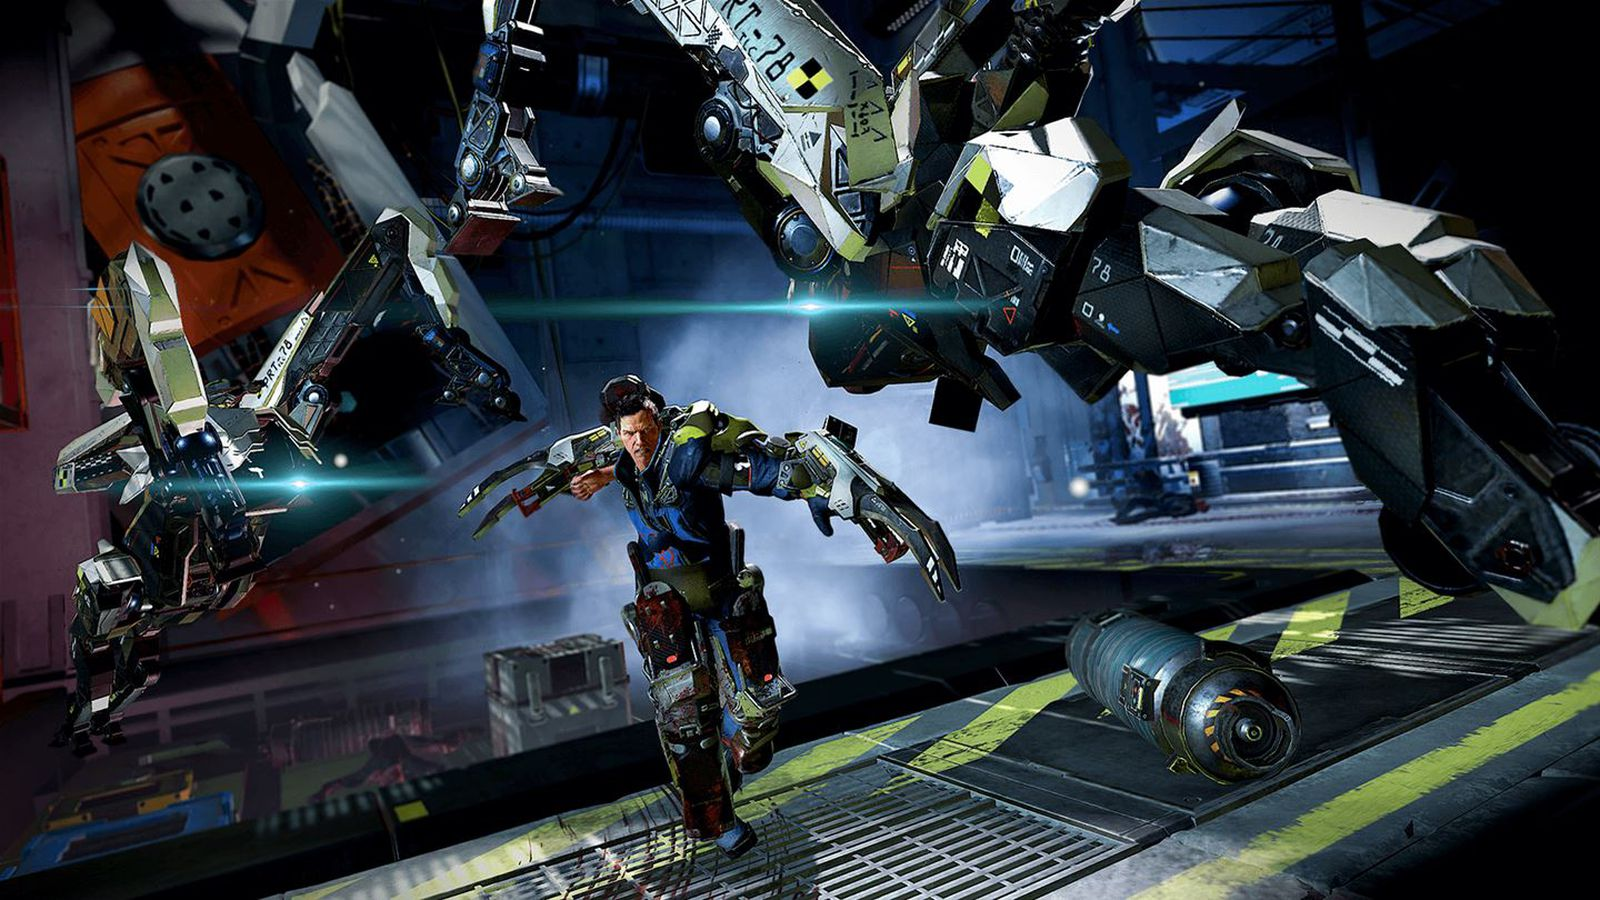 The Surge guide: 10 tips to keep you alive longer - Polygon